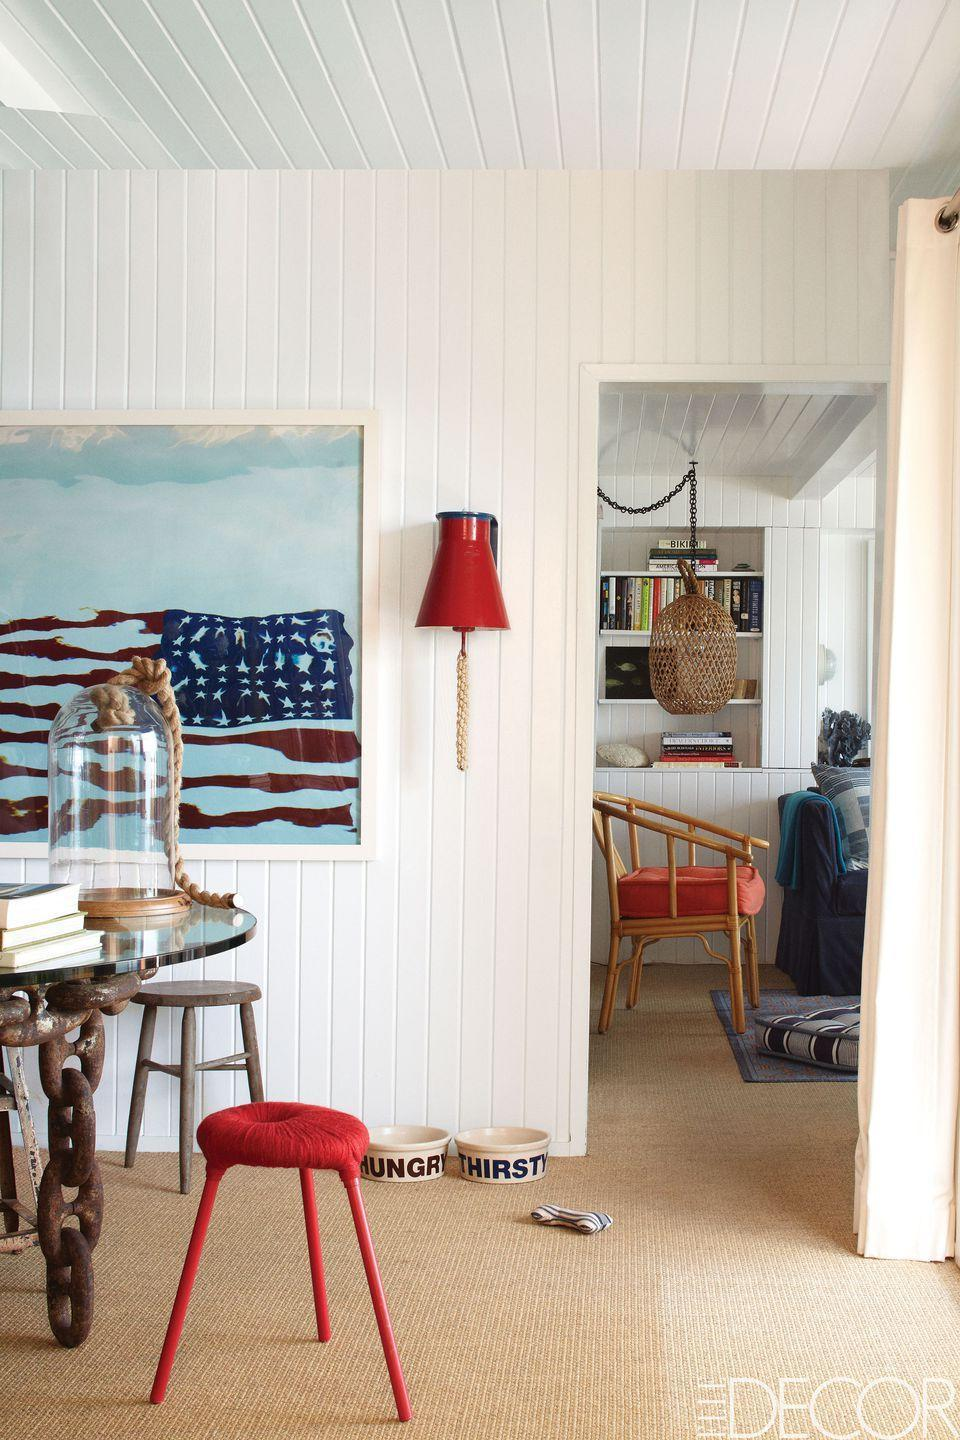 Sag Harbor House By P T Interiors With Images: Must-See Summer Houses That Are Full Of Design Ideas